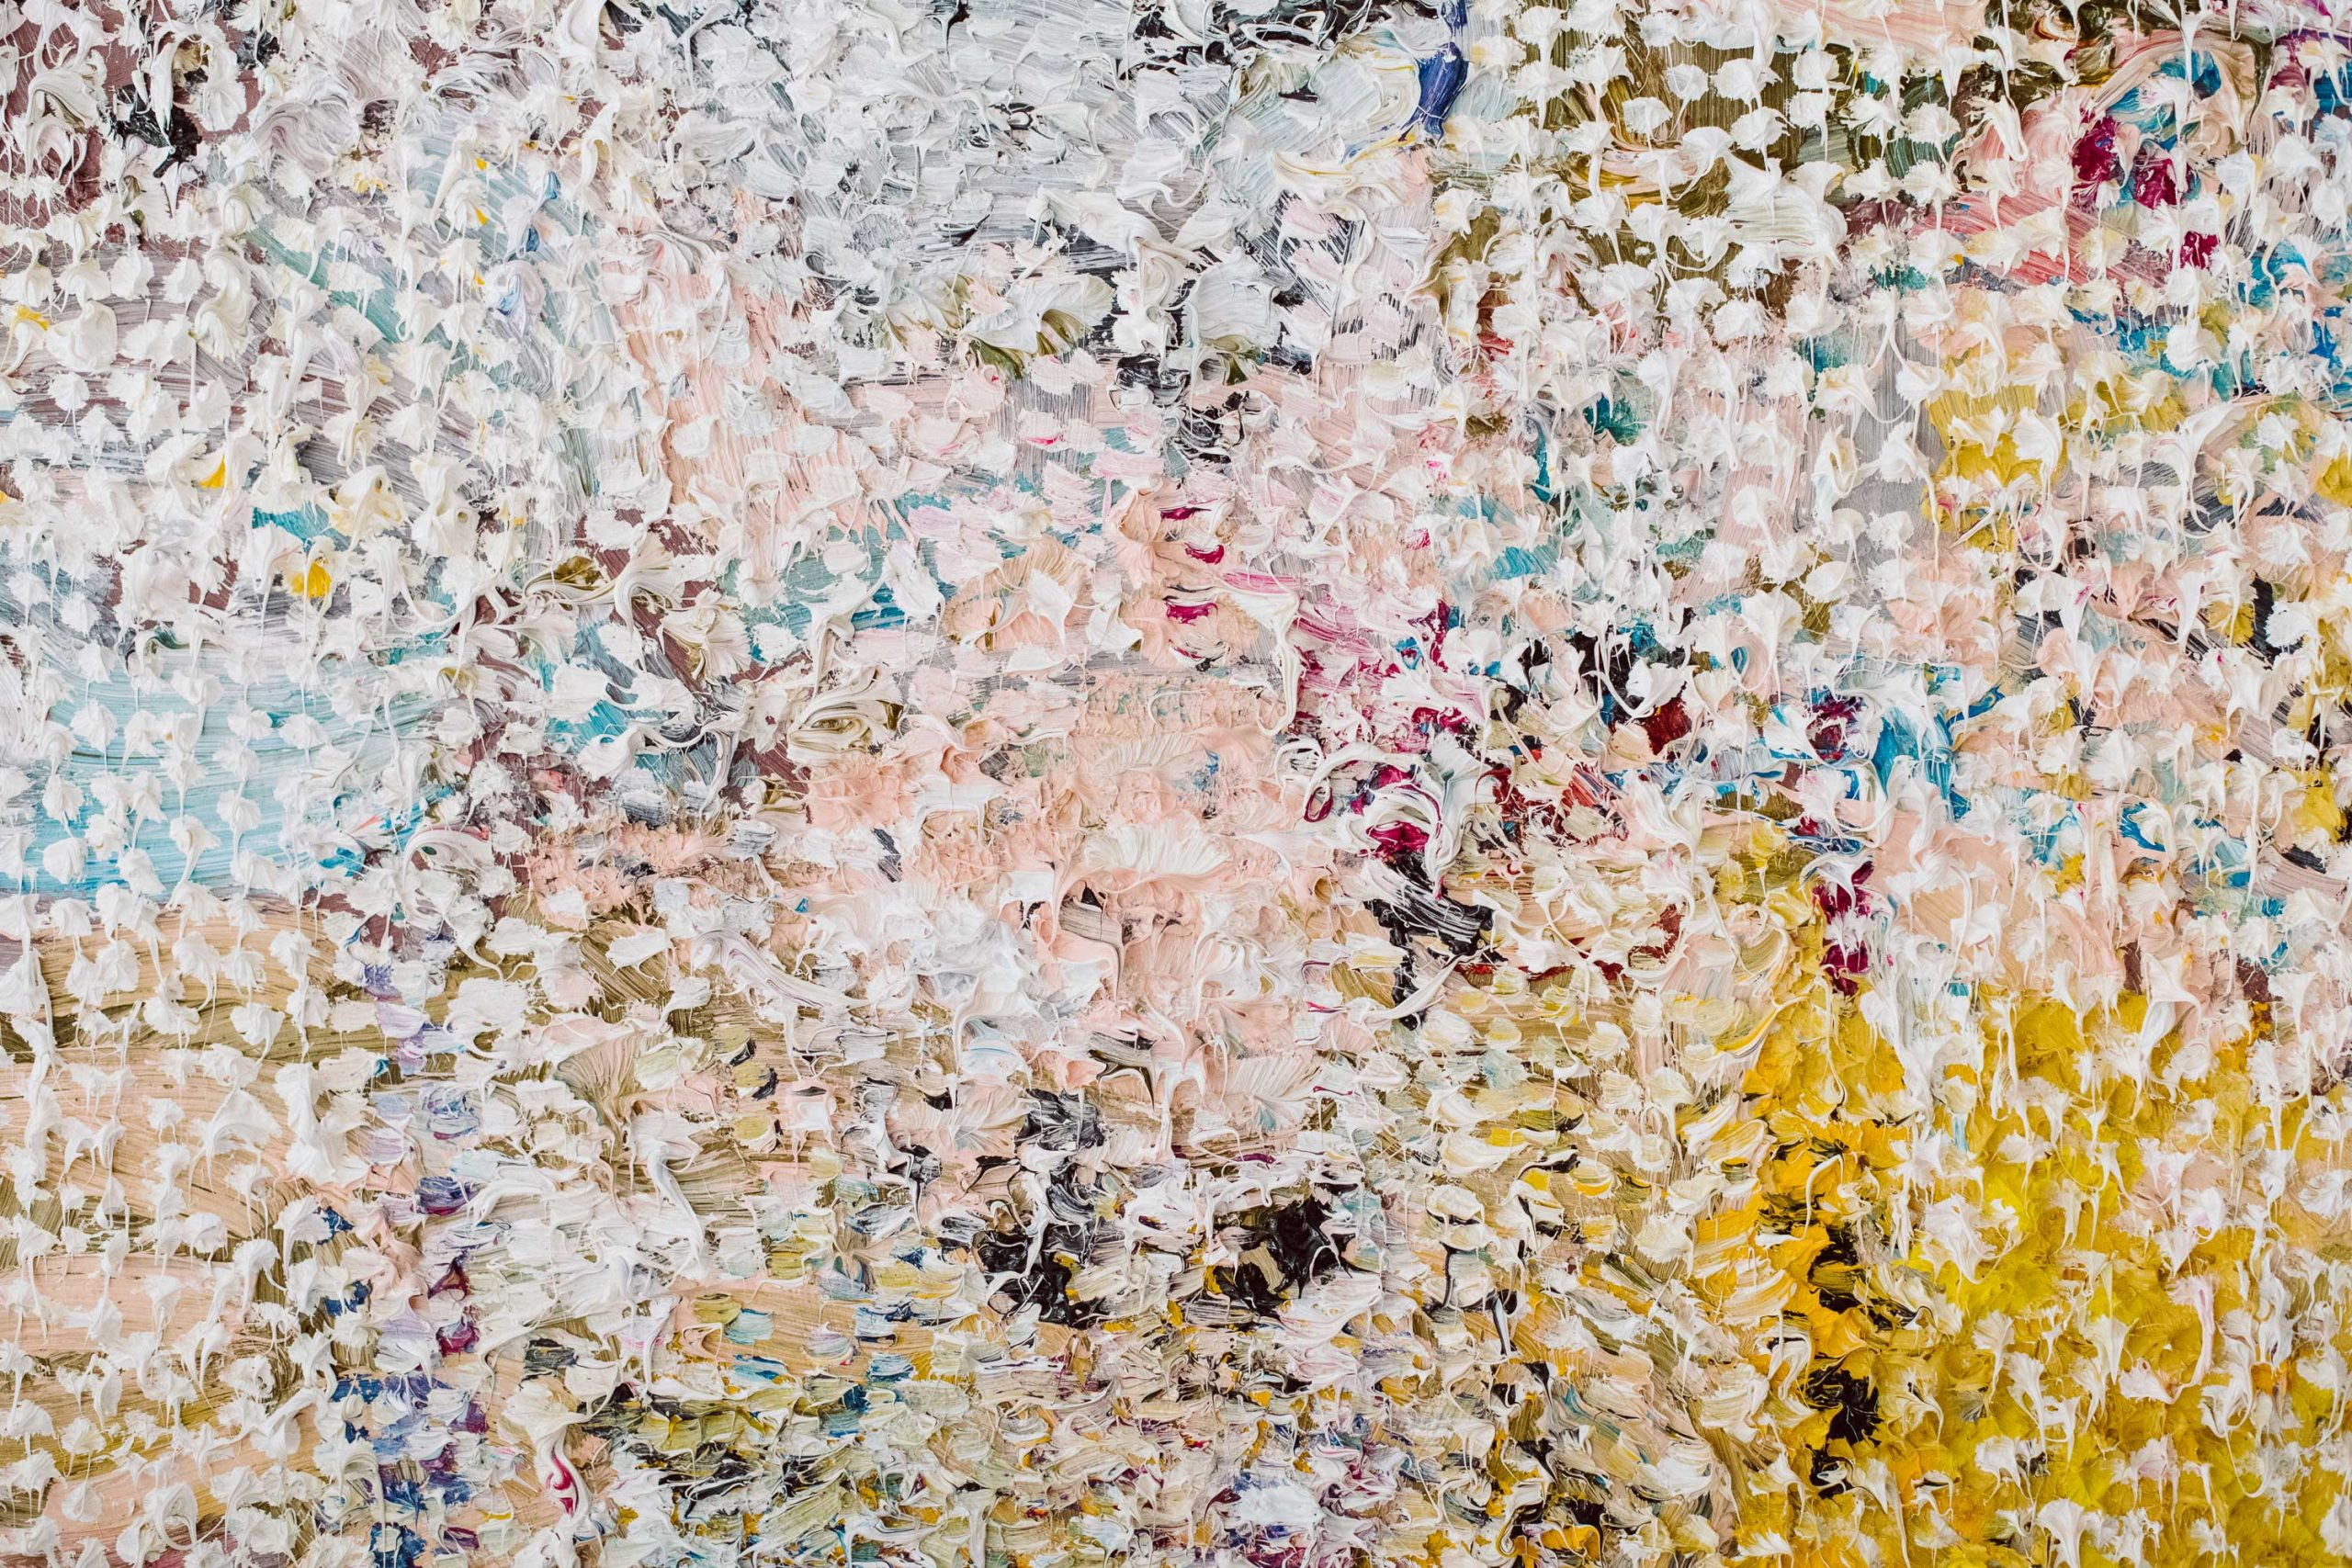 A close up image of a textured and multicolored painting.